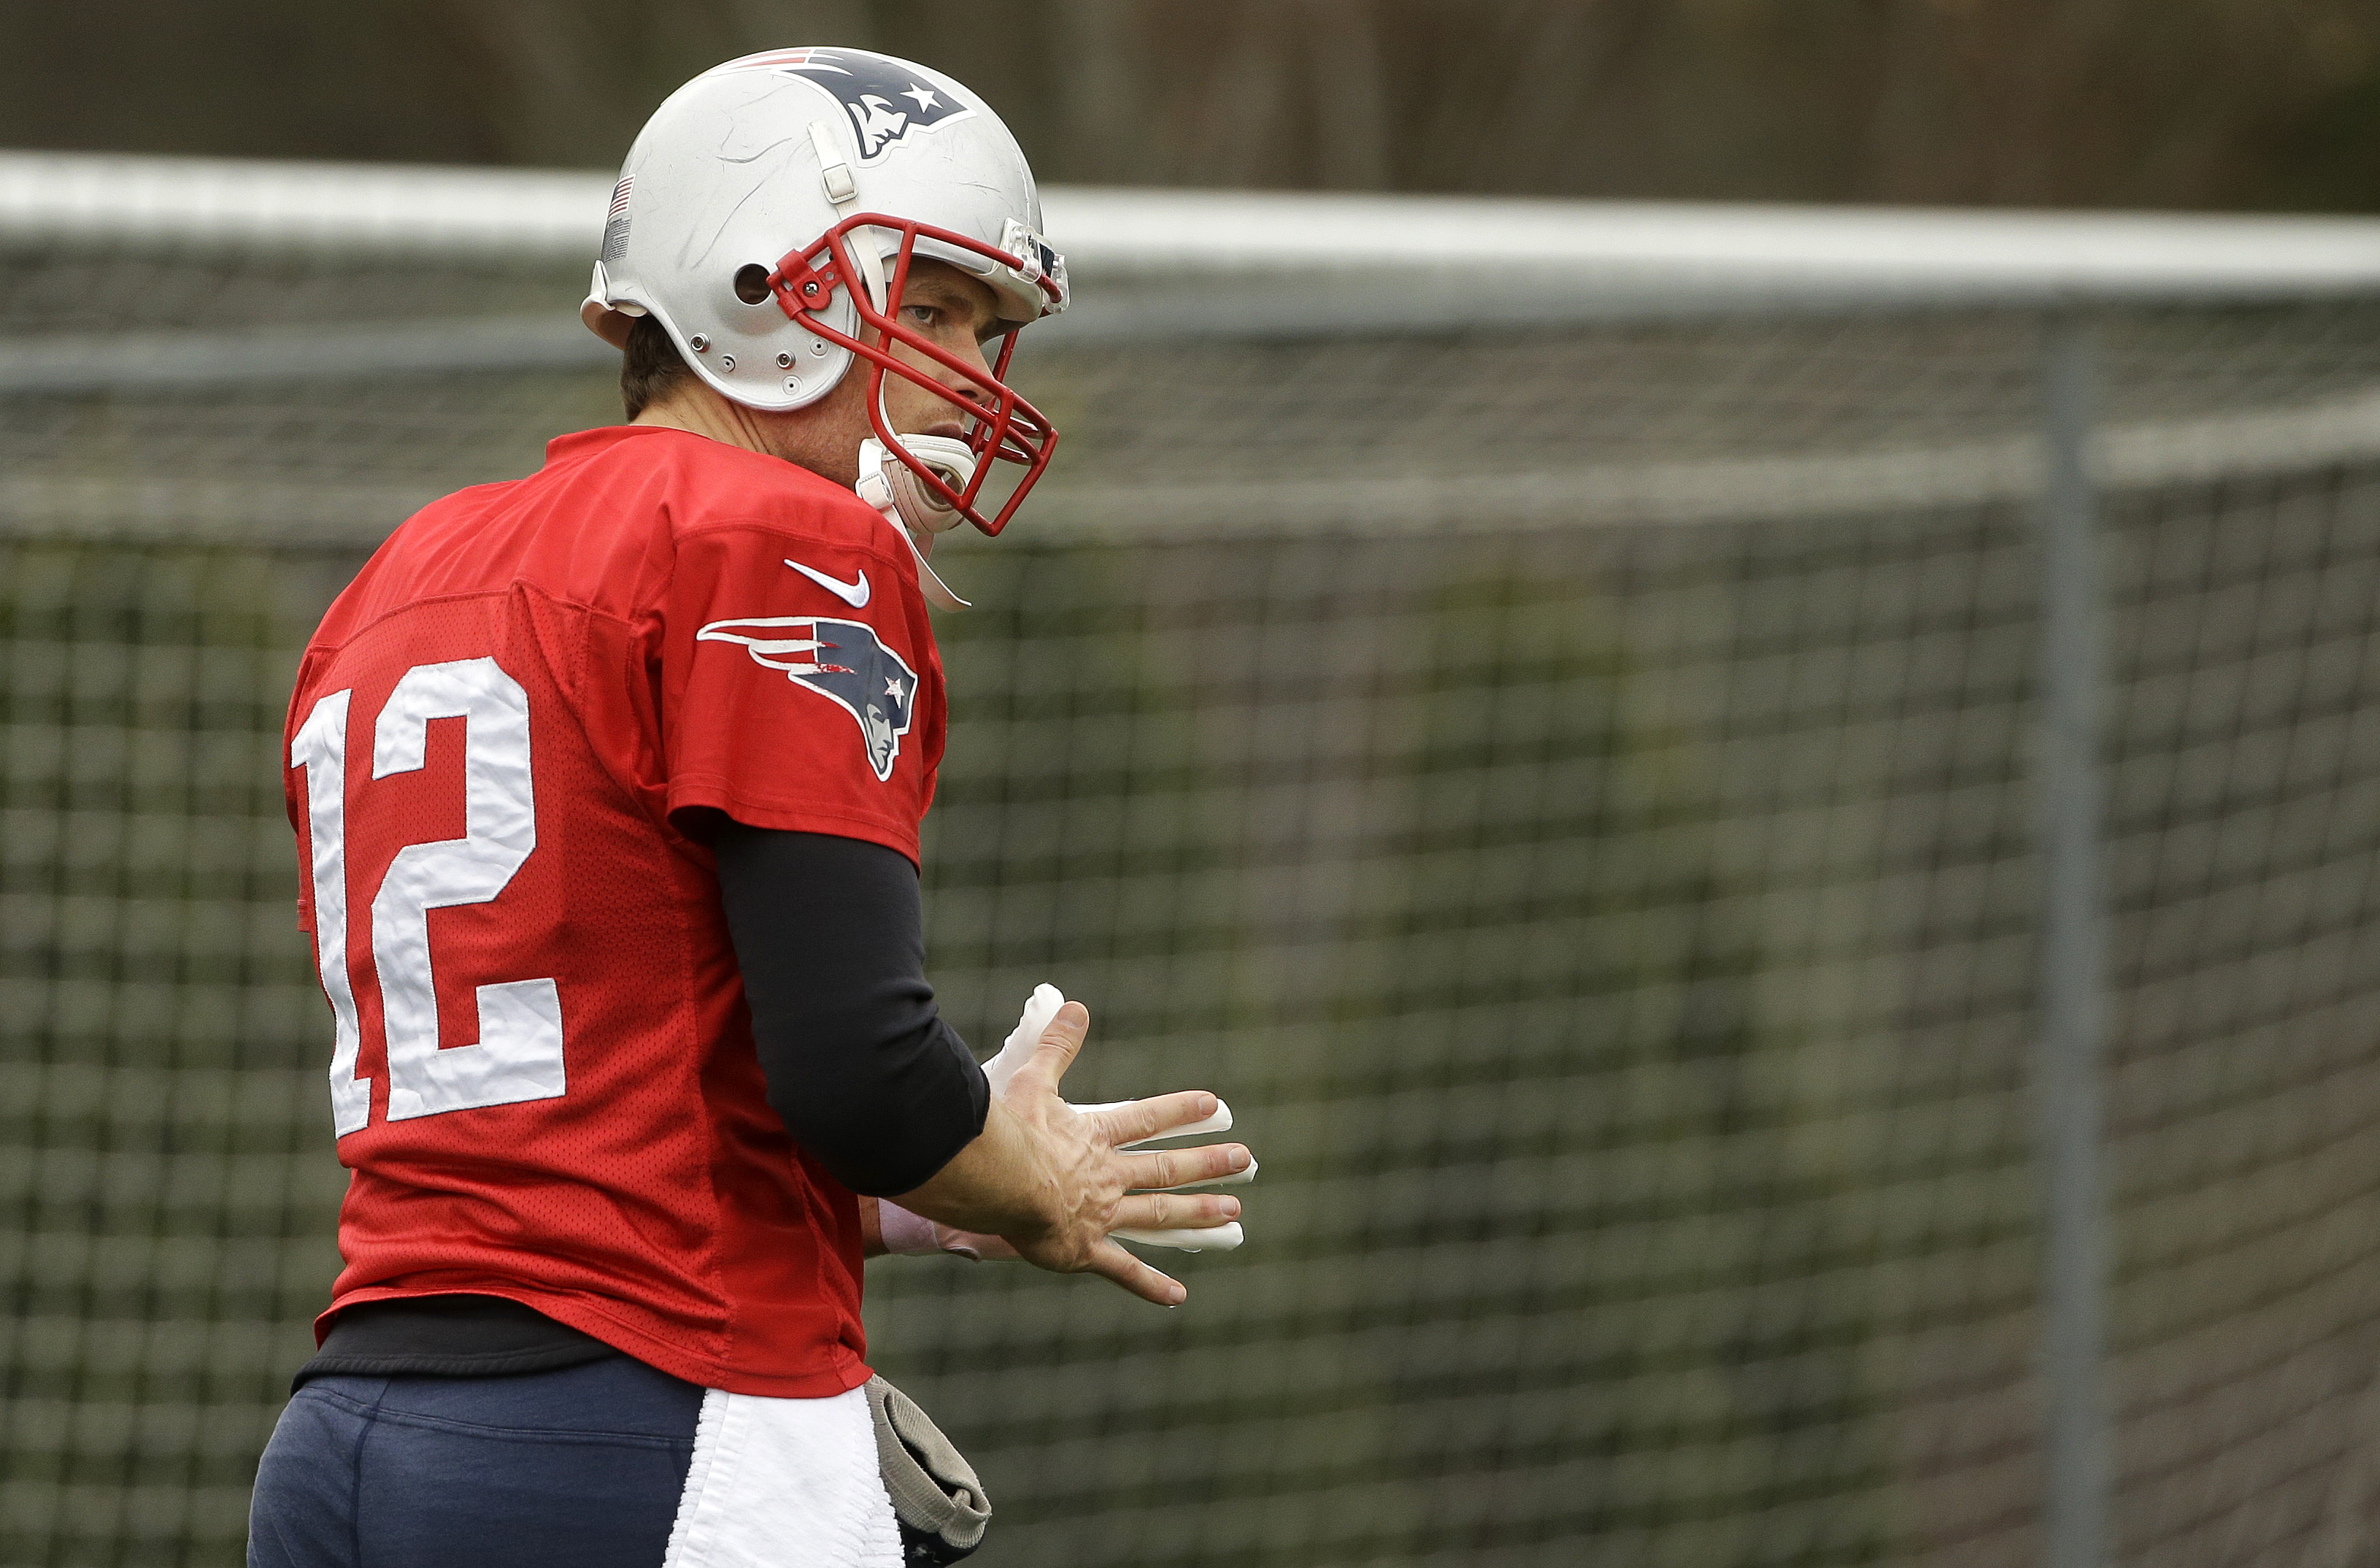 New England Patriots quarterback Tom Brady warms up during an NFL football practice, Wednesday, Dec. 23, 2015, in Foxborough, Mass. The Patriots are to play the New York Jets Sunday, Dec. 27, in East Rutherford, N.J. (AP Photo/Steven Senne)